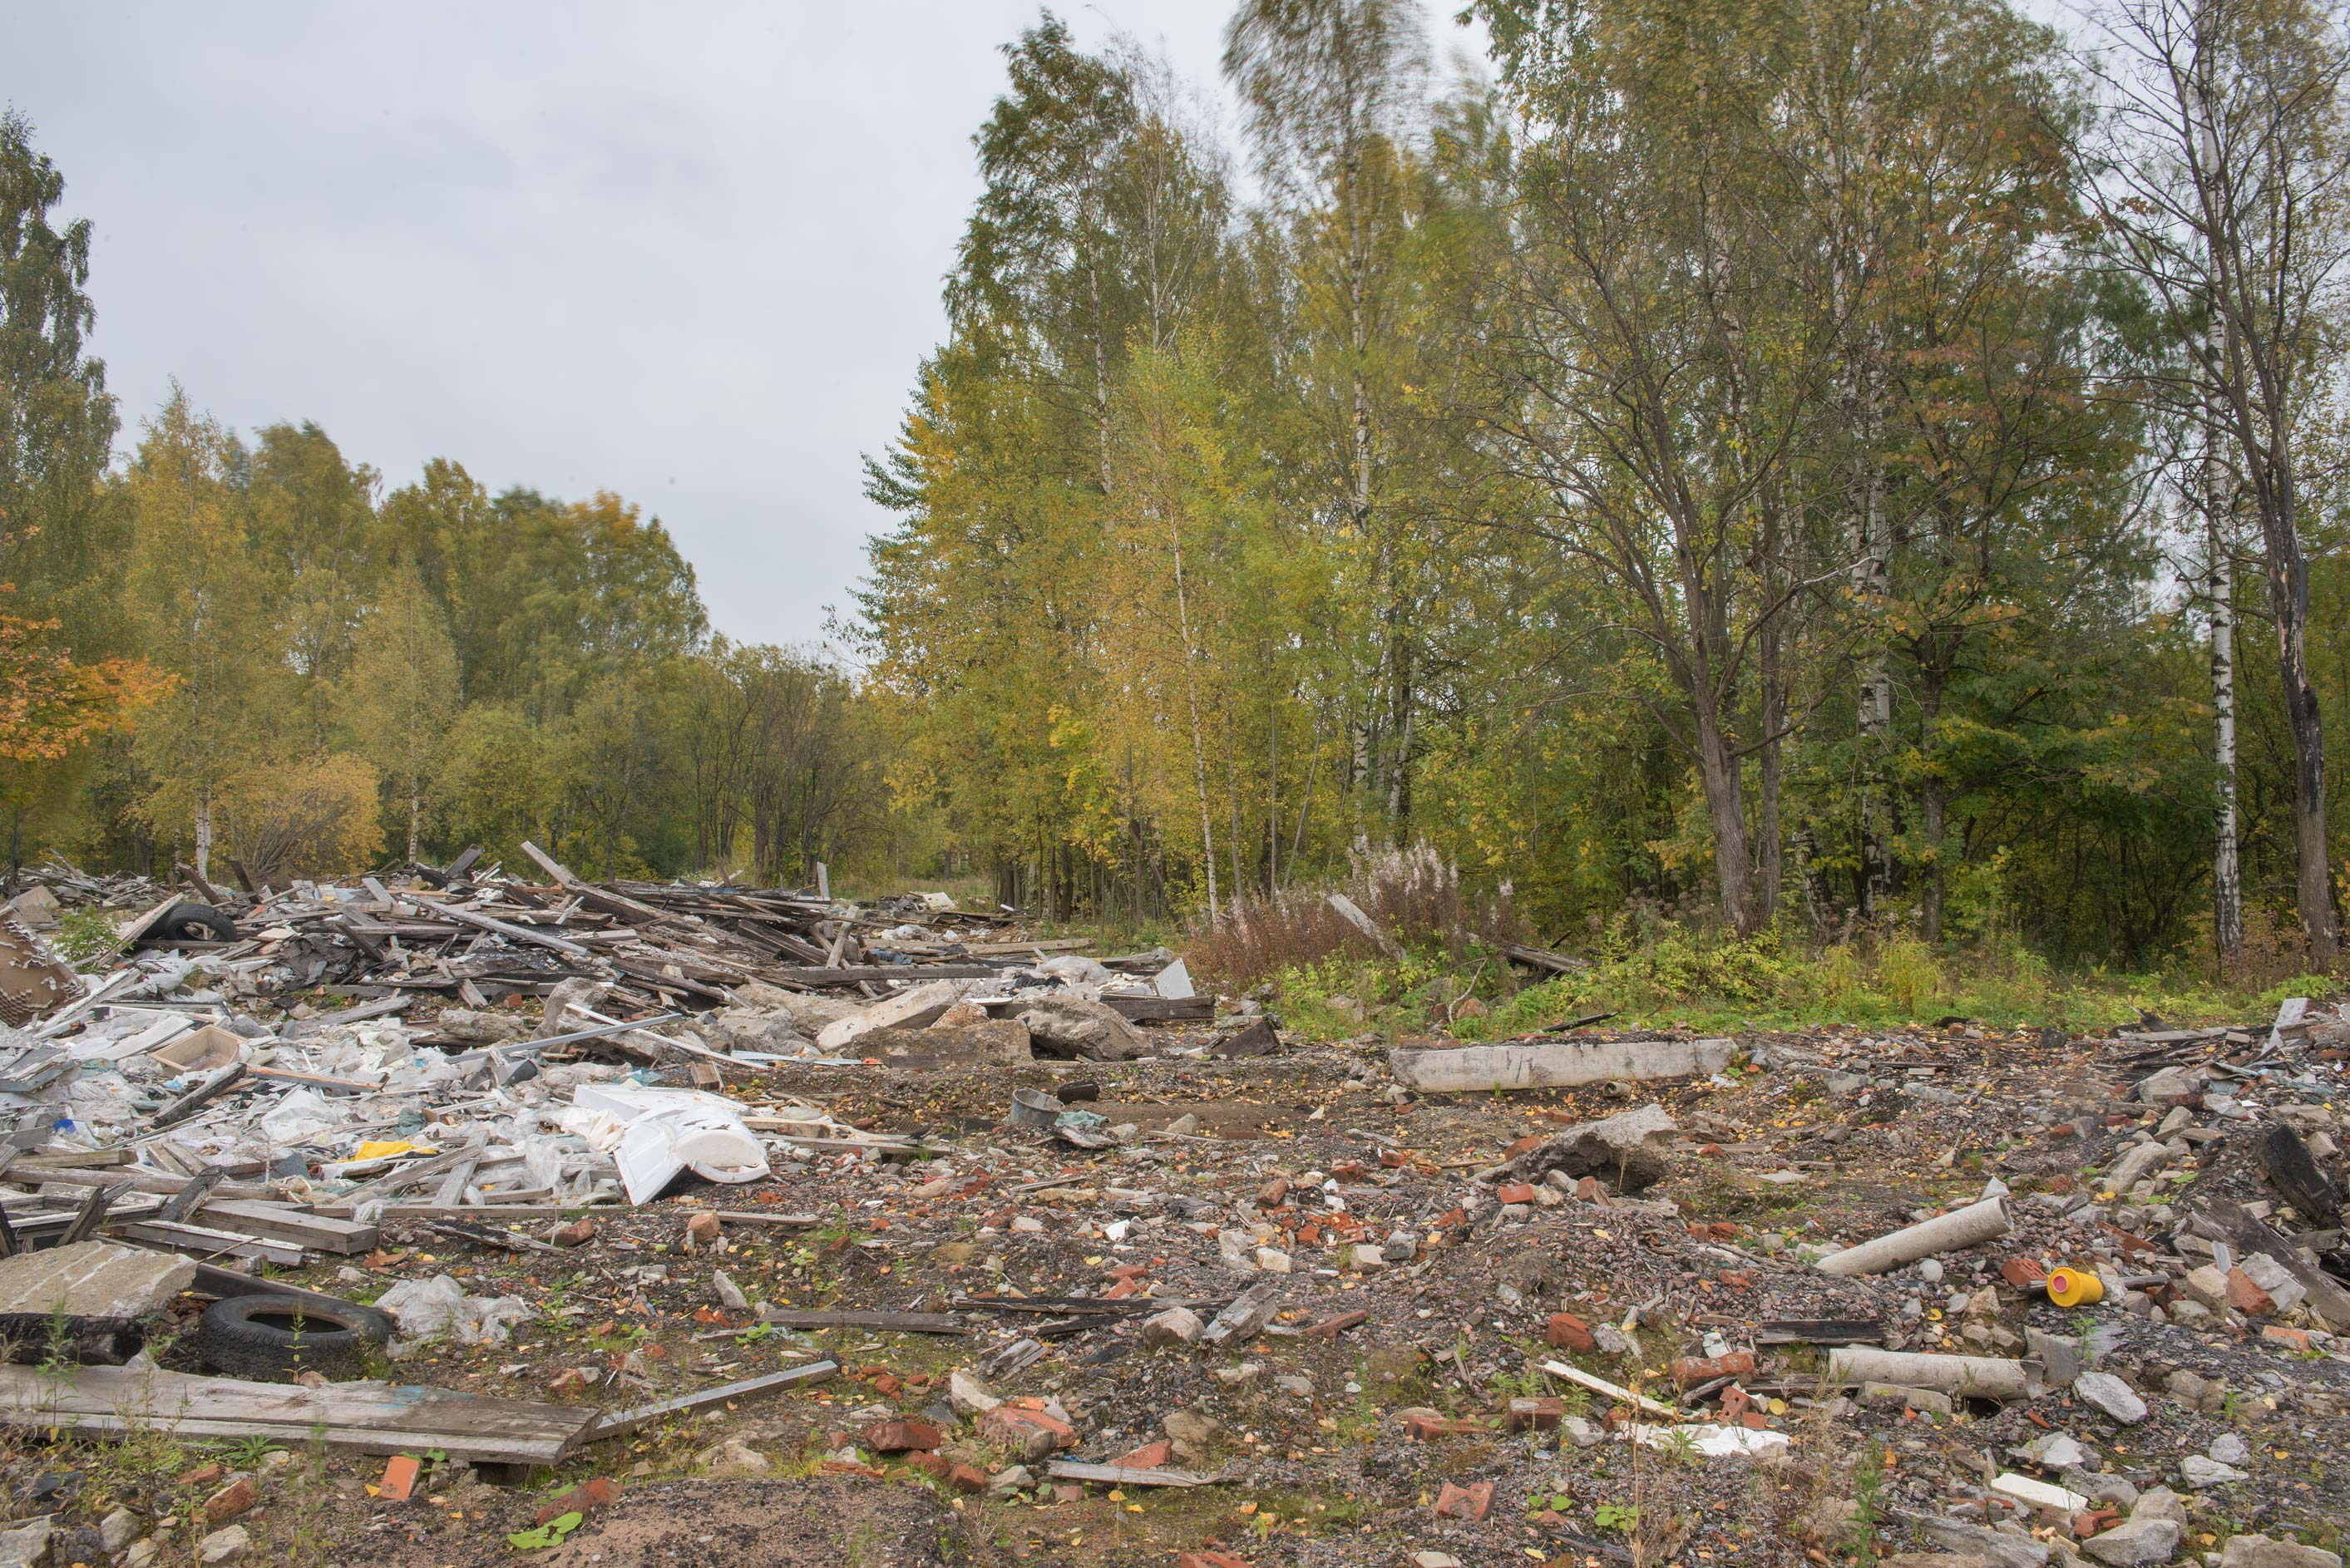 Rubbish in area of former German camps in Sosnovka Park. St.Petersburg, Russia